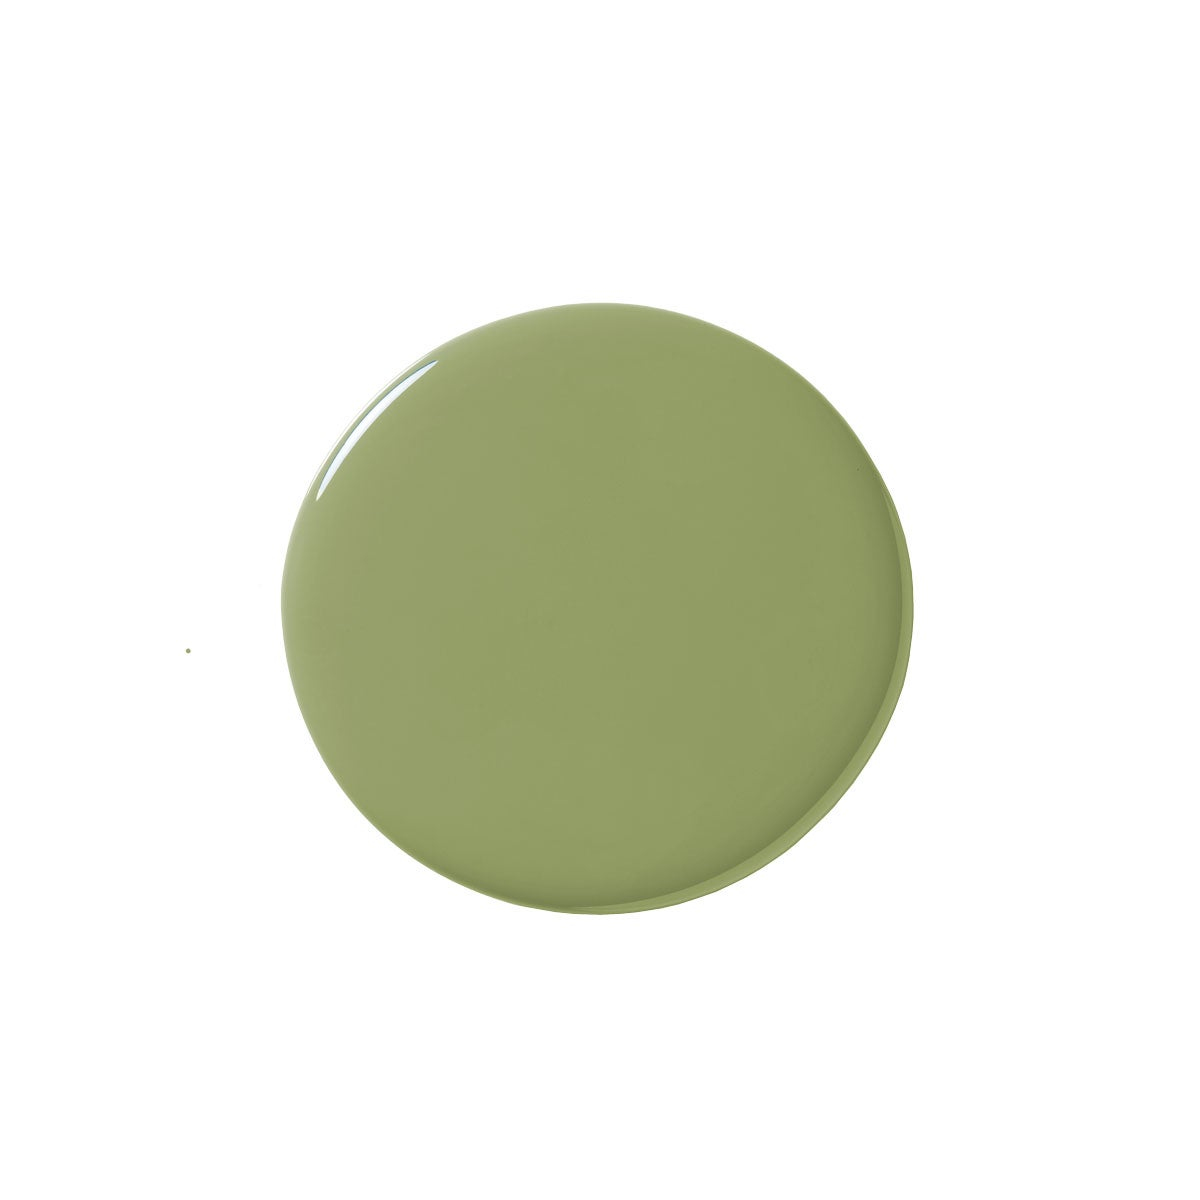 Farrow & Ball and Liberty Just Made Matching a Paint Color to Your Sofa Infinitely Easier